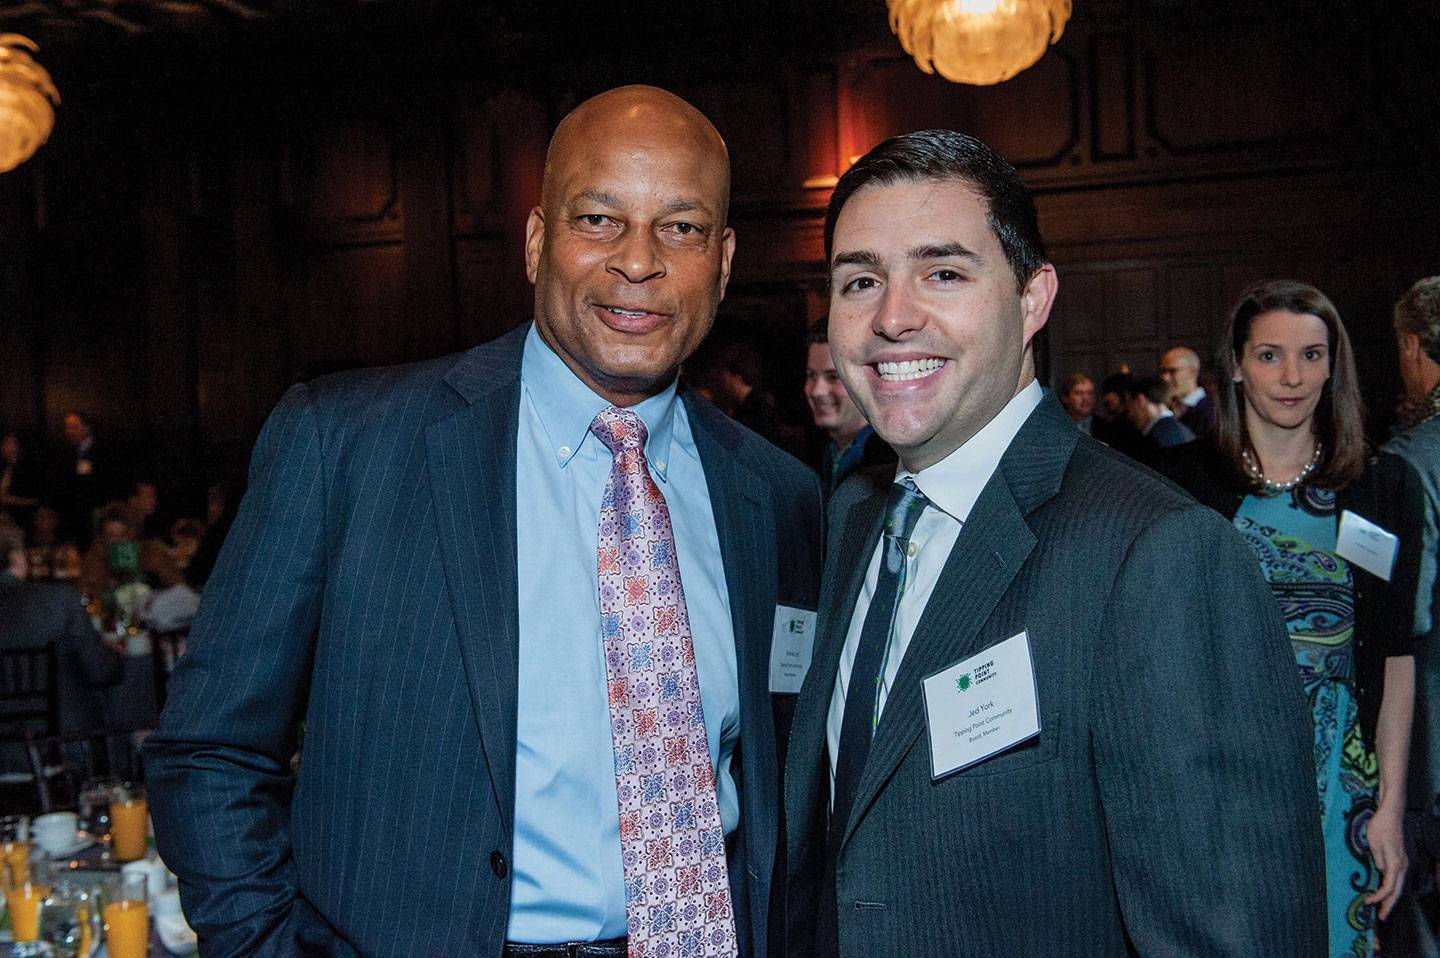 Ronnie Lott and Jed York